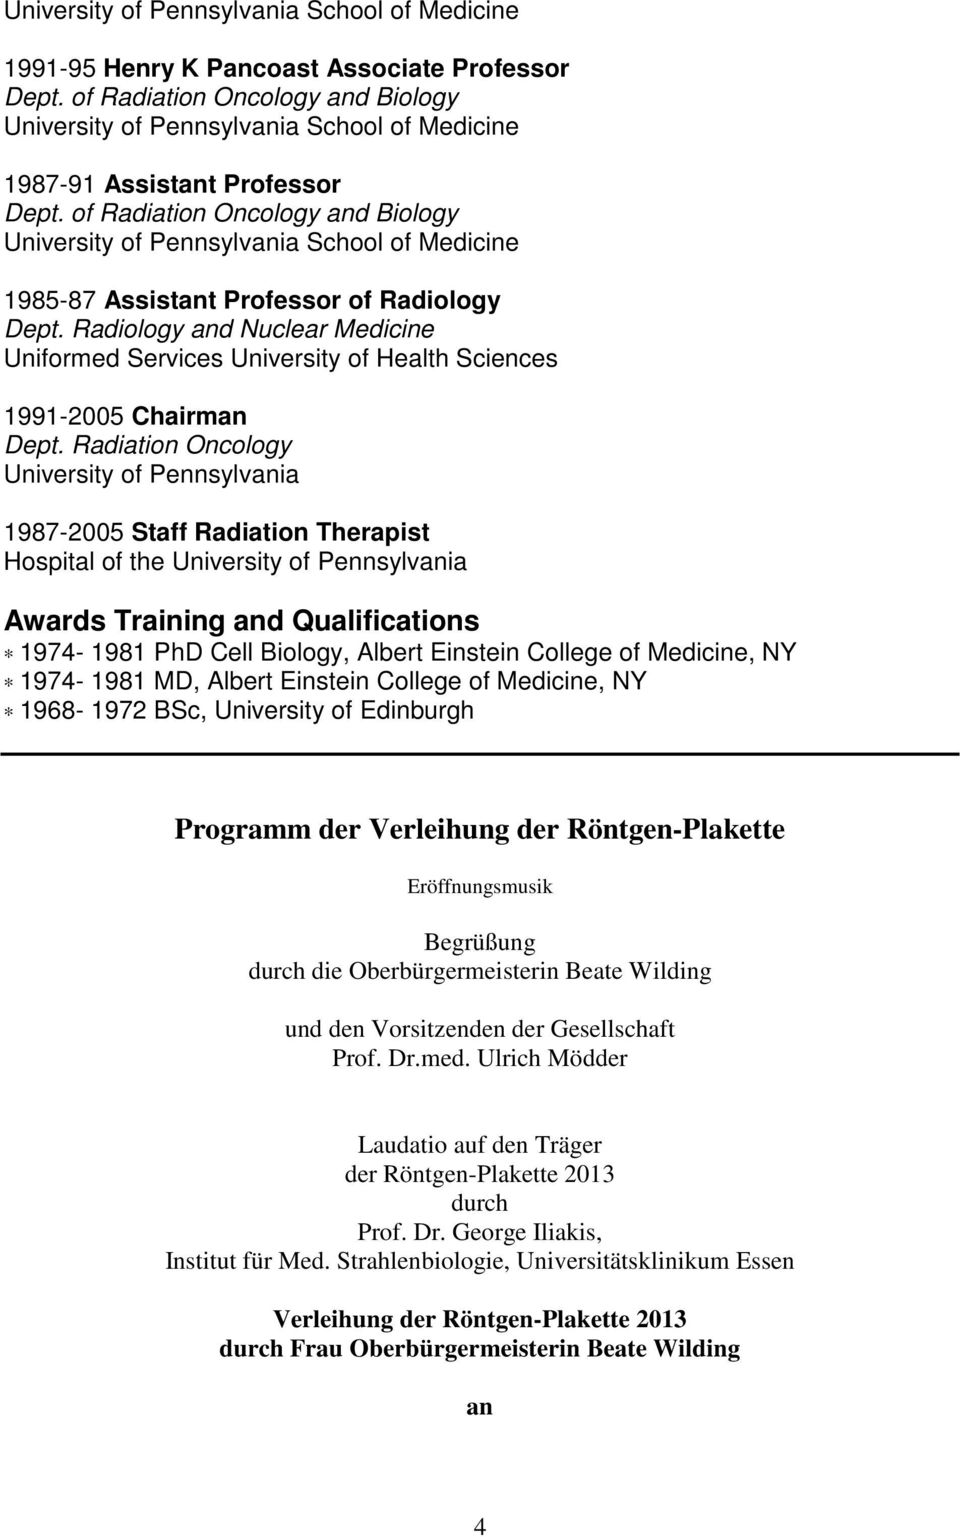 Radiation Oncology University of Pennsylvania 1987-2005 Staff Radiation Therapist Hospital of the University of Pennsylvania Awards Training and Qualifications 1974-1981 PhD Cell Biology, Albert